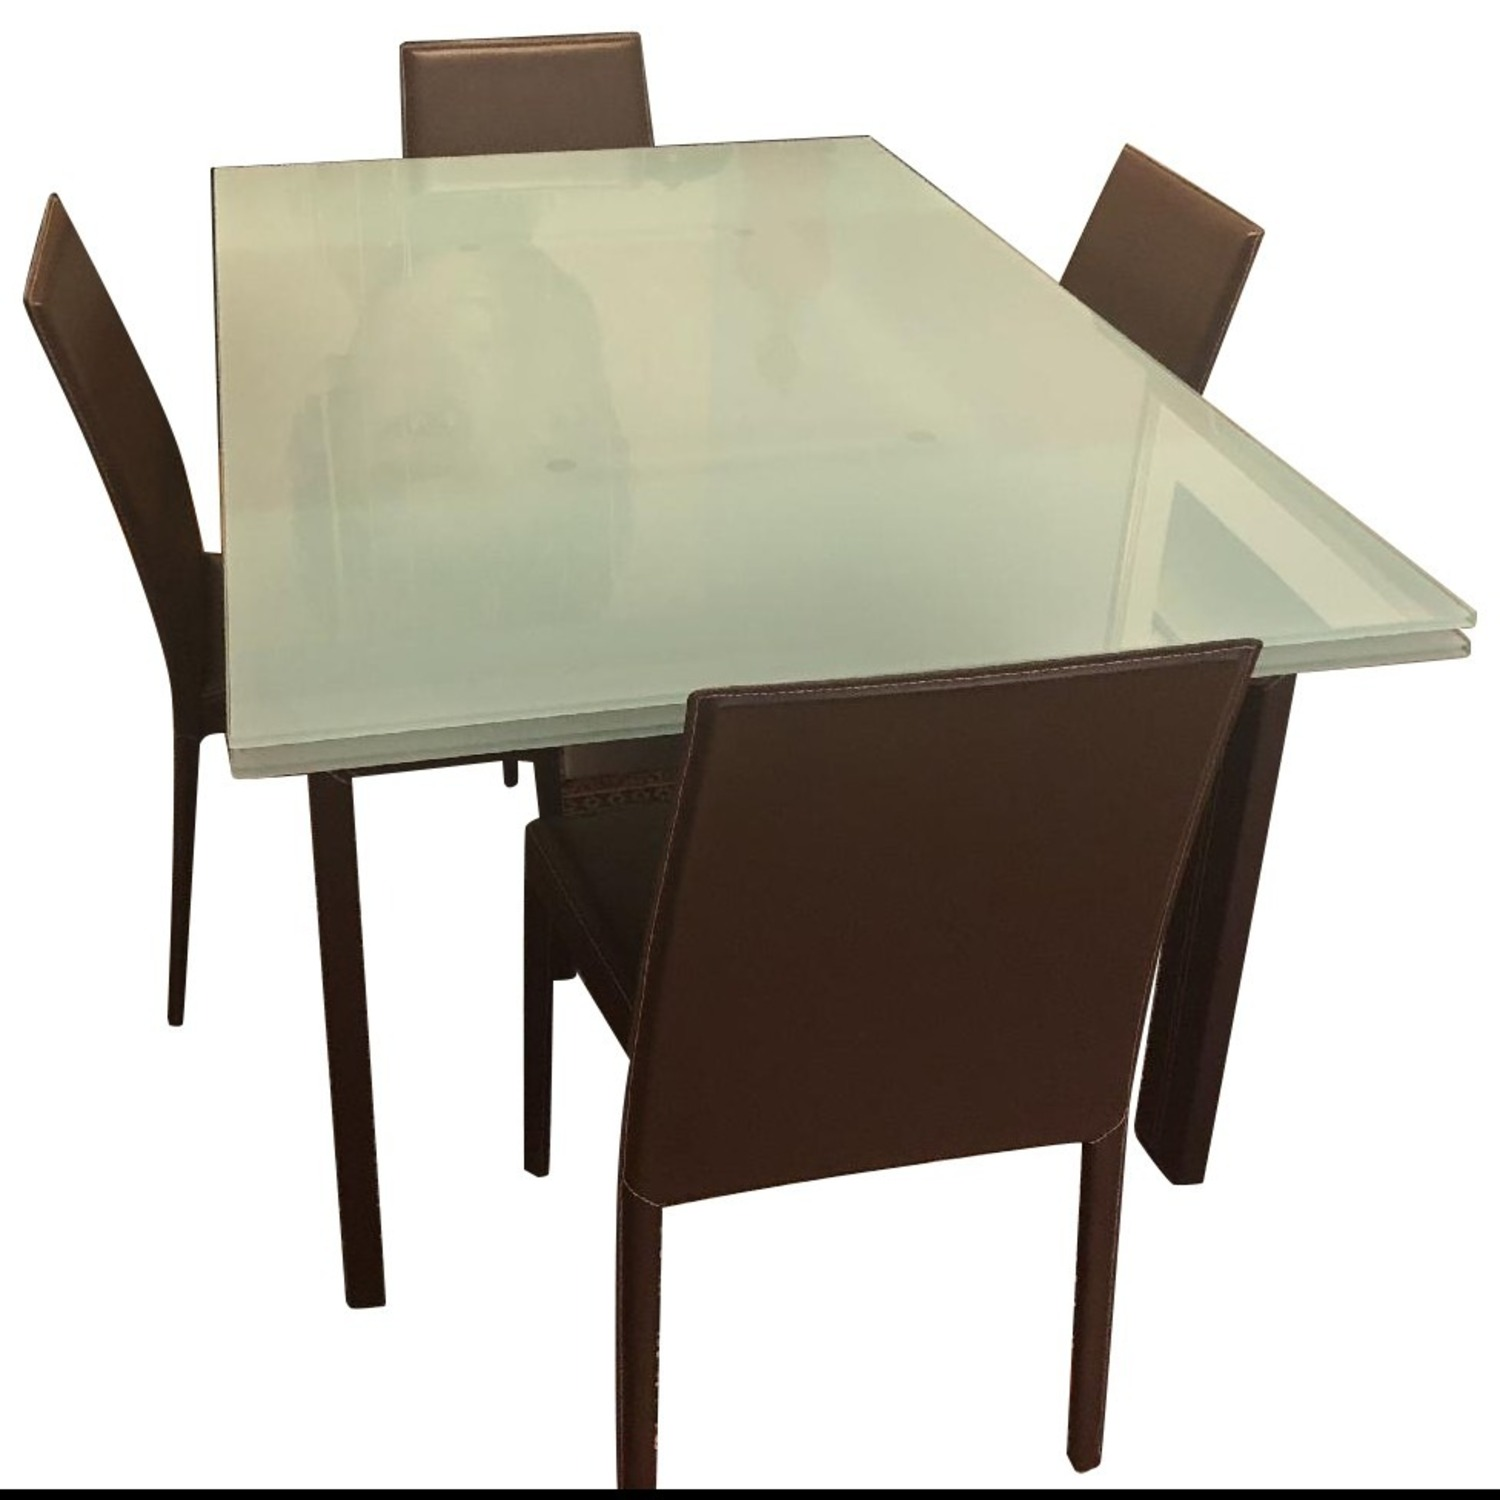 Calligaris Extension Table w/ 4 Chairs - image-1